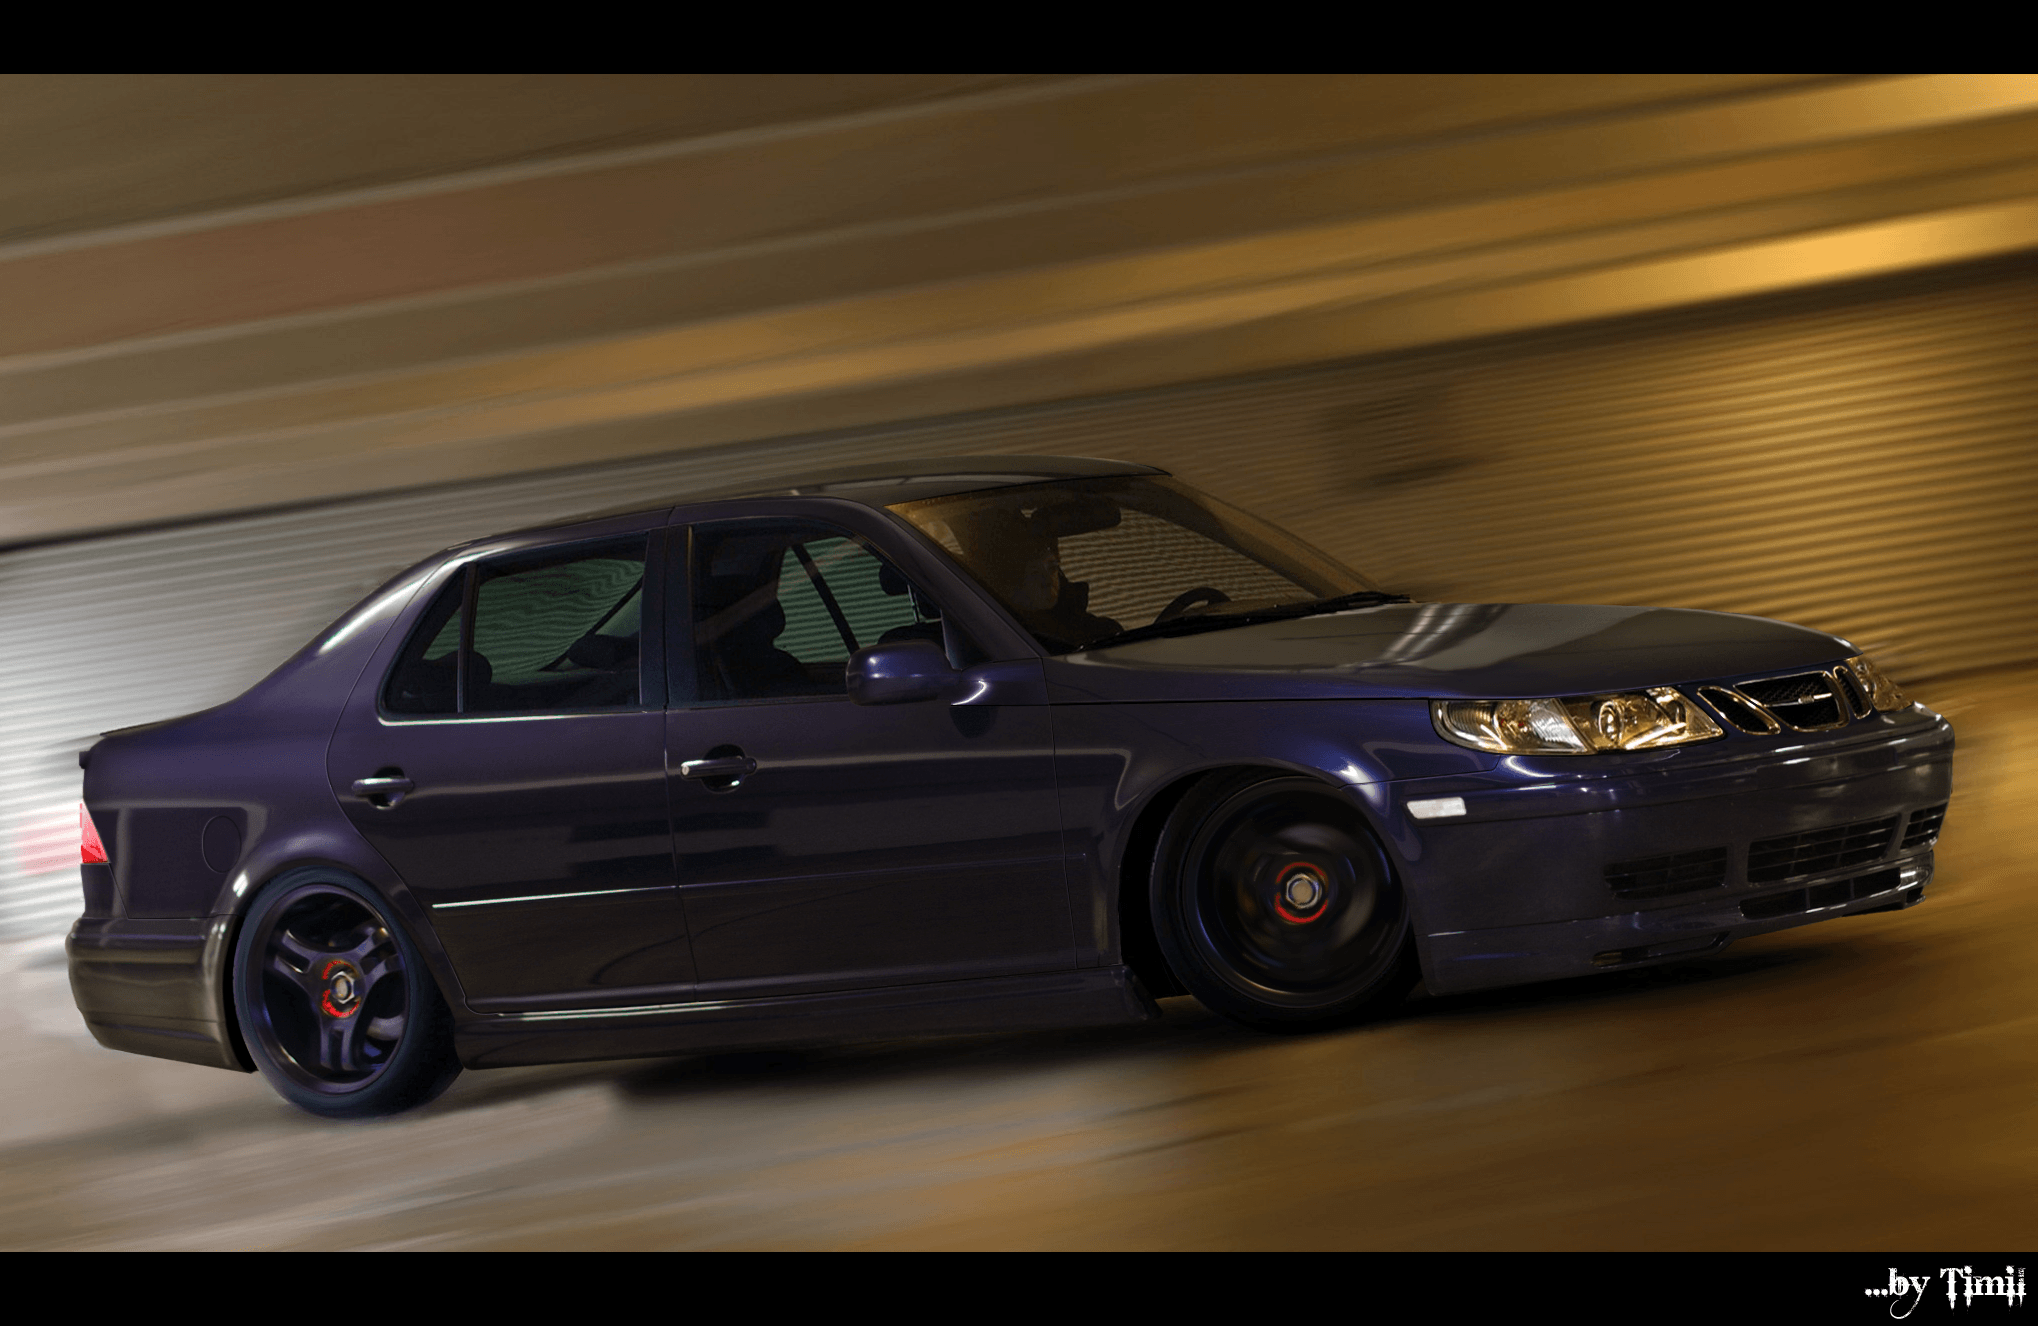 car brand Saab 9-5 models wallpapers and images - wallpapers ...